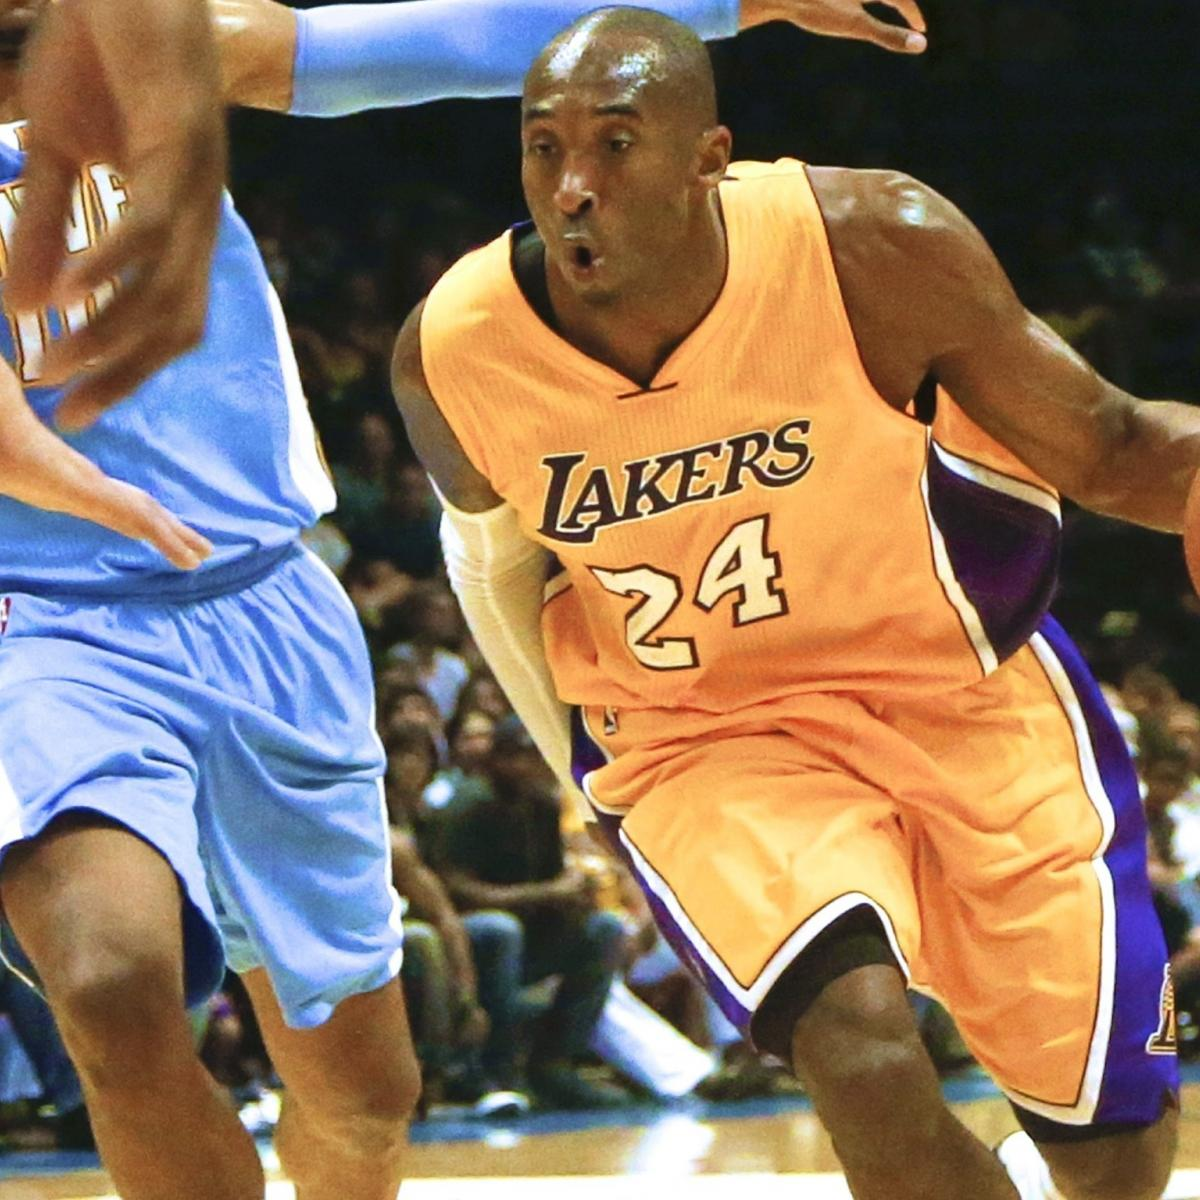 Nuggets Quarter Season Tickets: Denver Nuggets Vs. Los Angeles Lakers: Live Score And